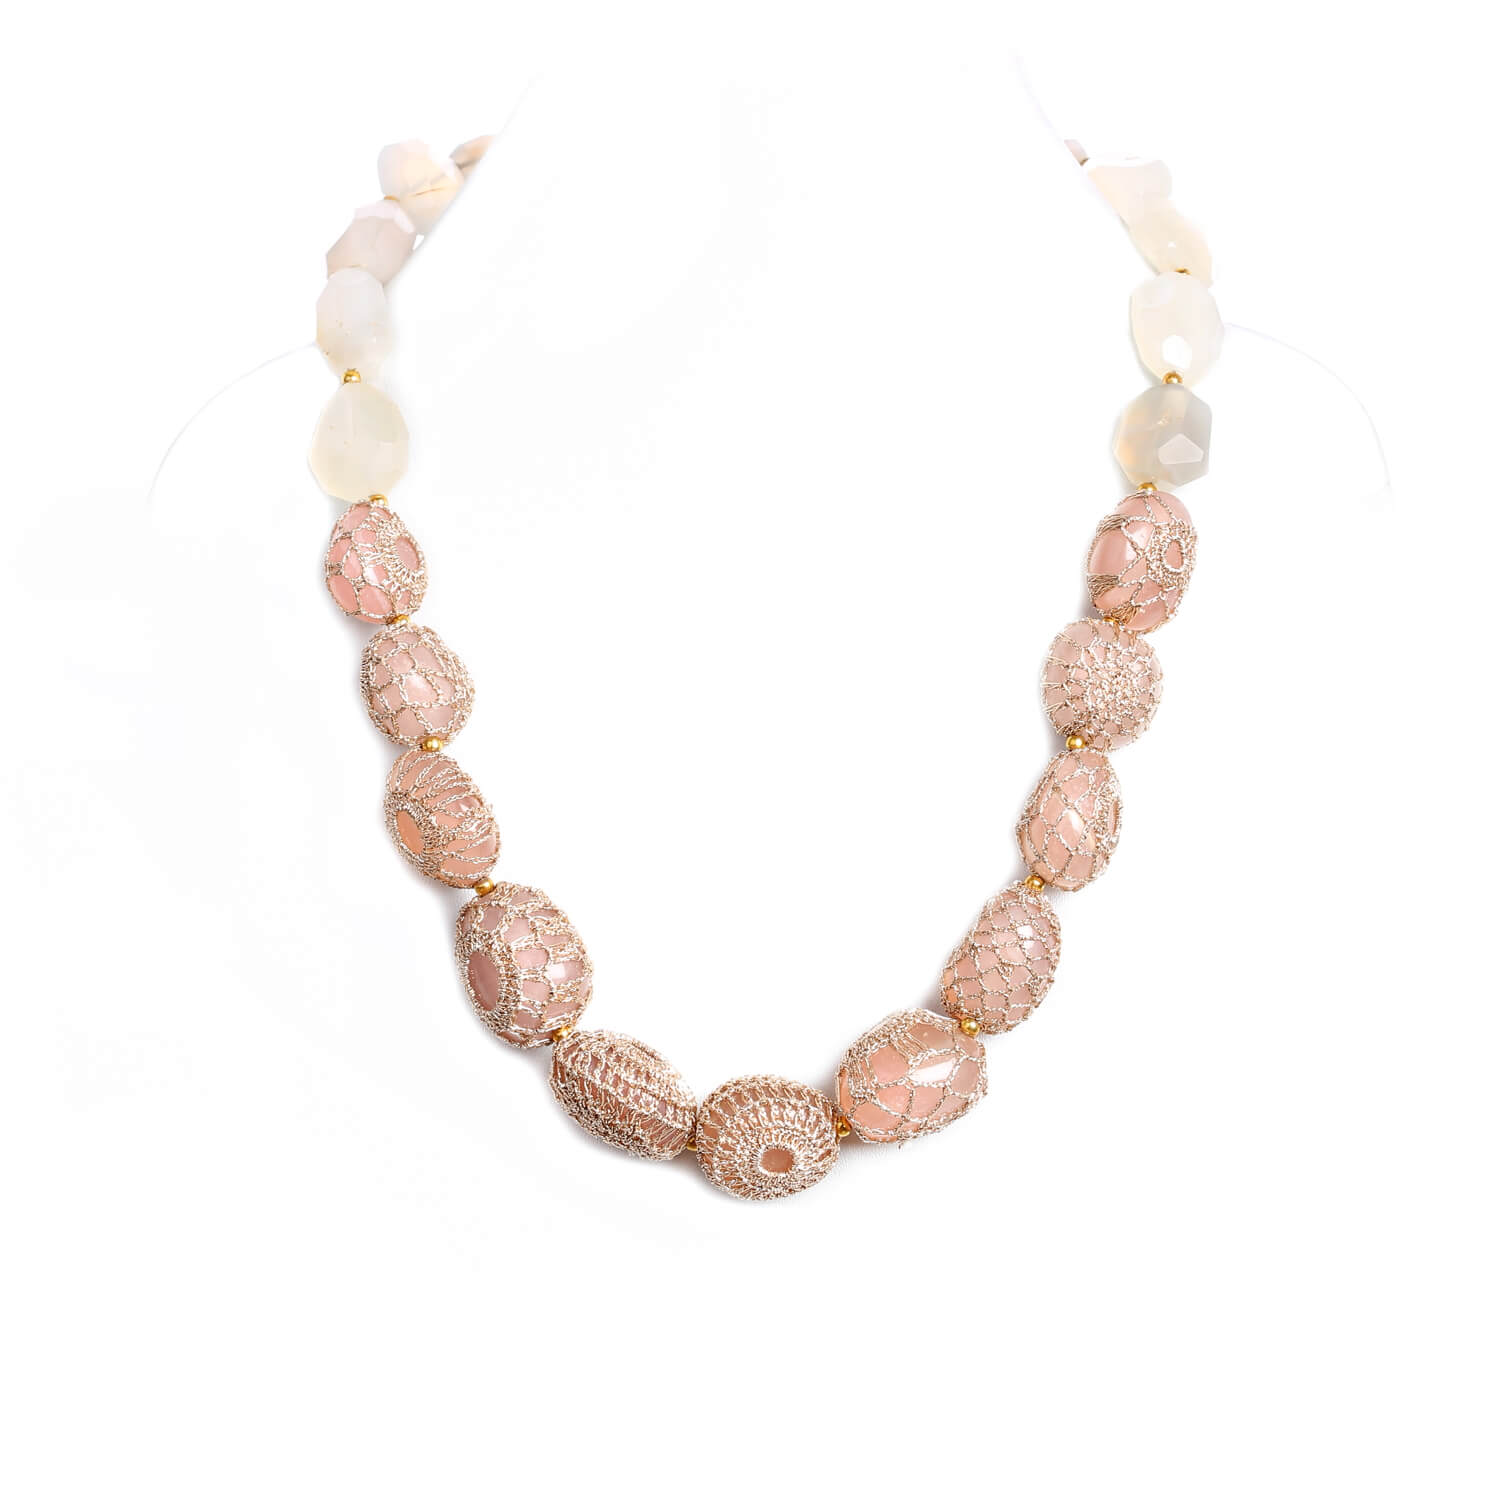 Nomad String of Precious Stones Quartz Necklace - Blush